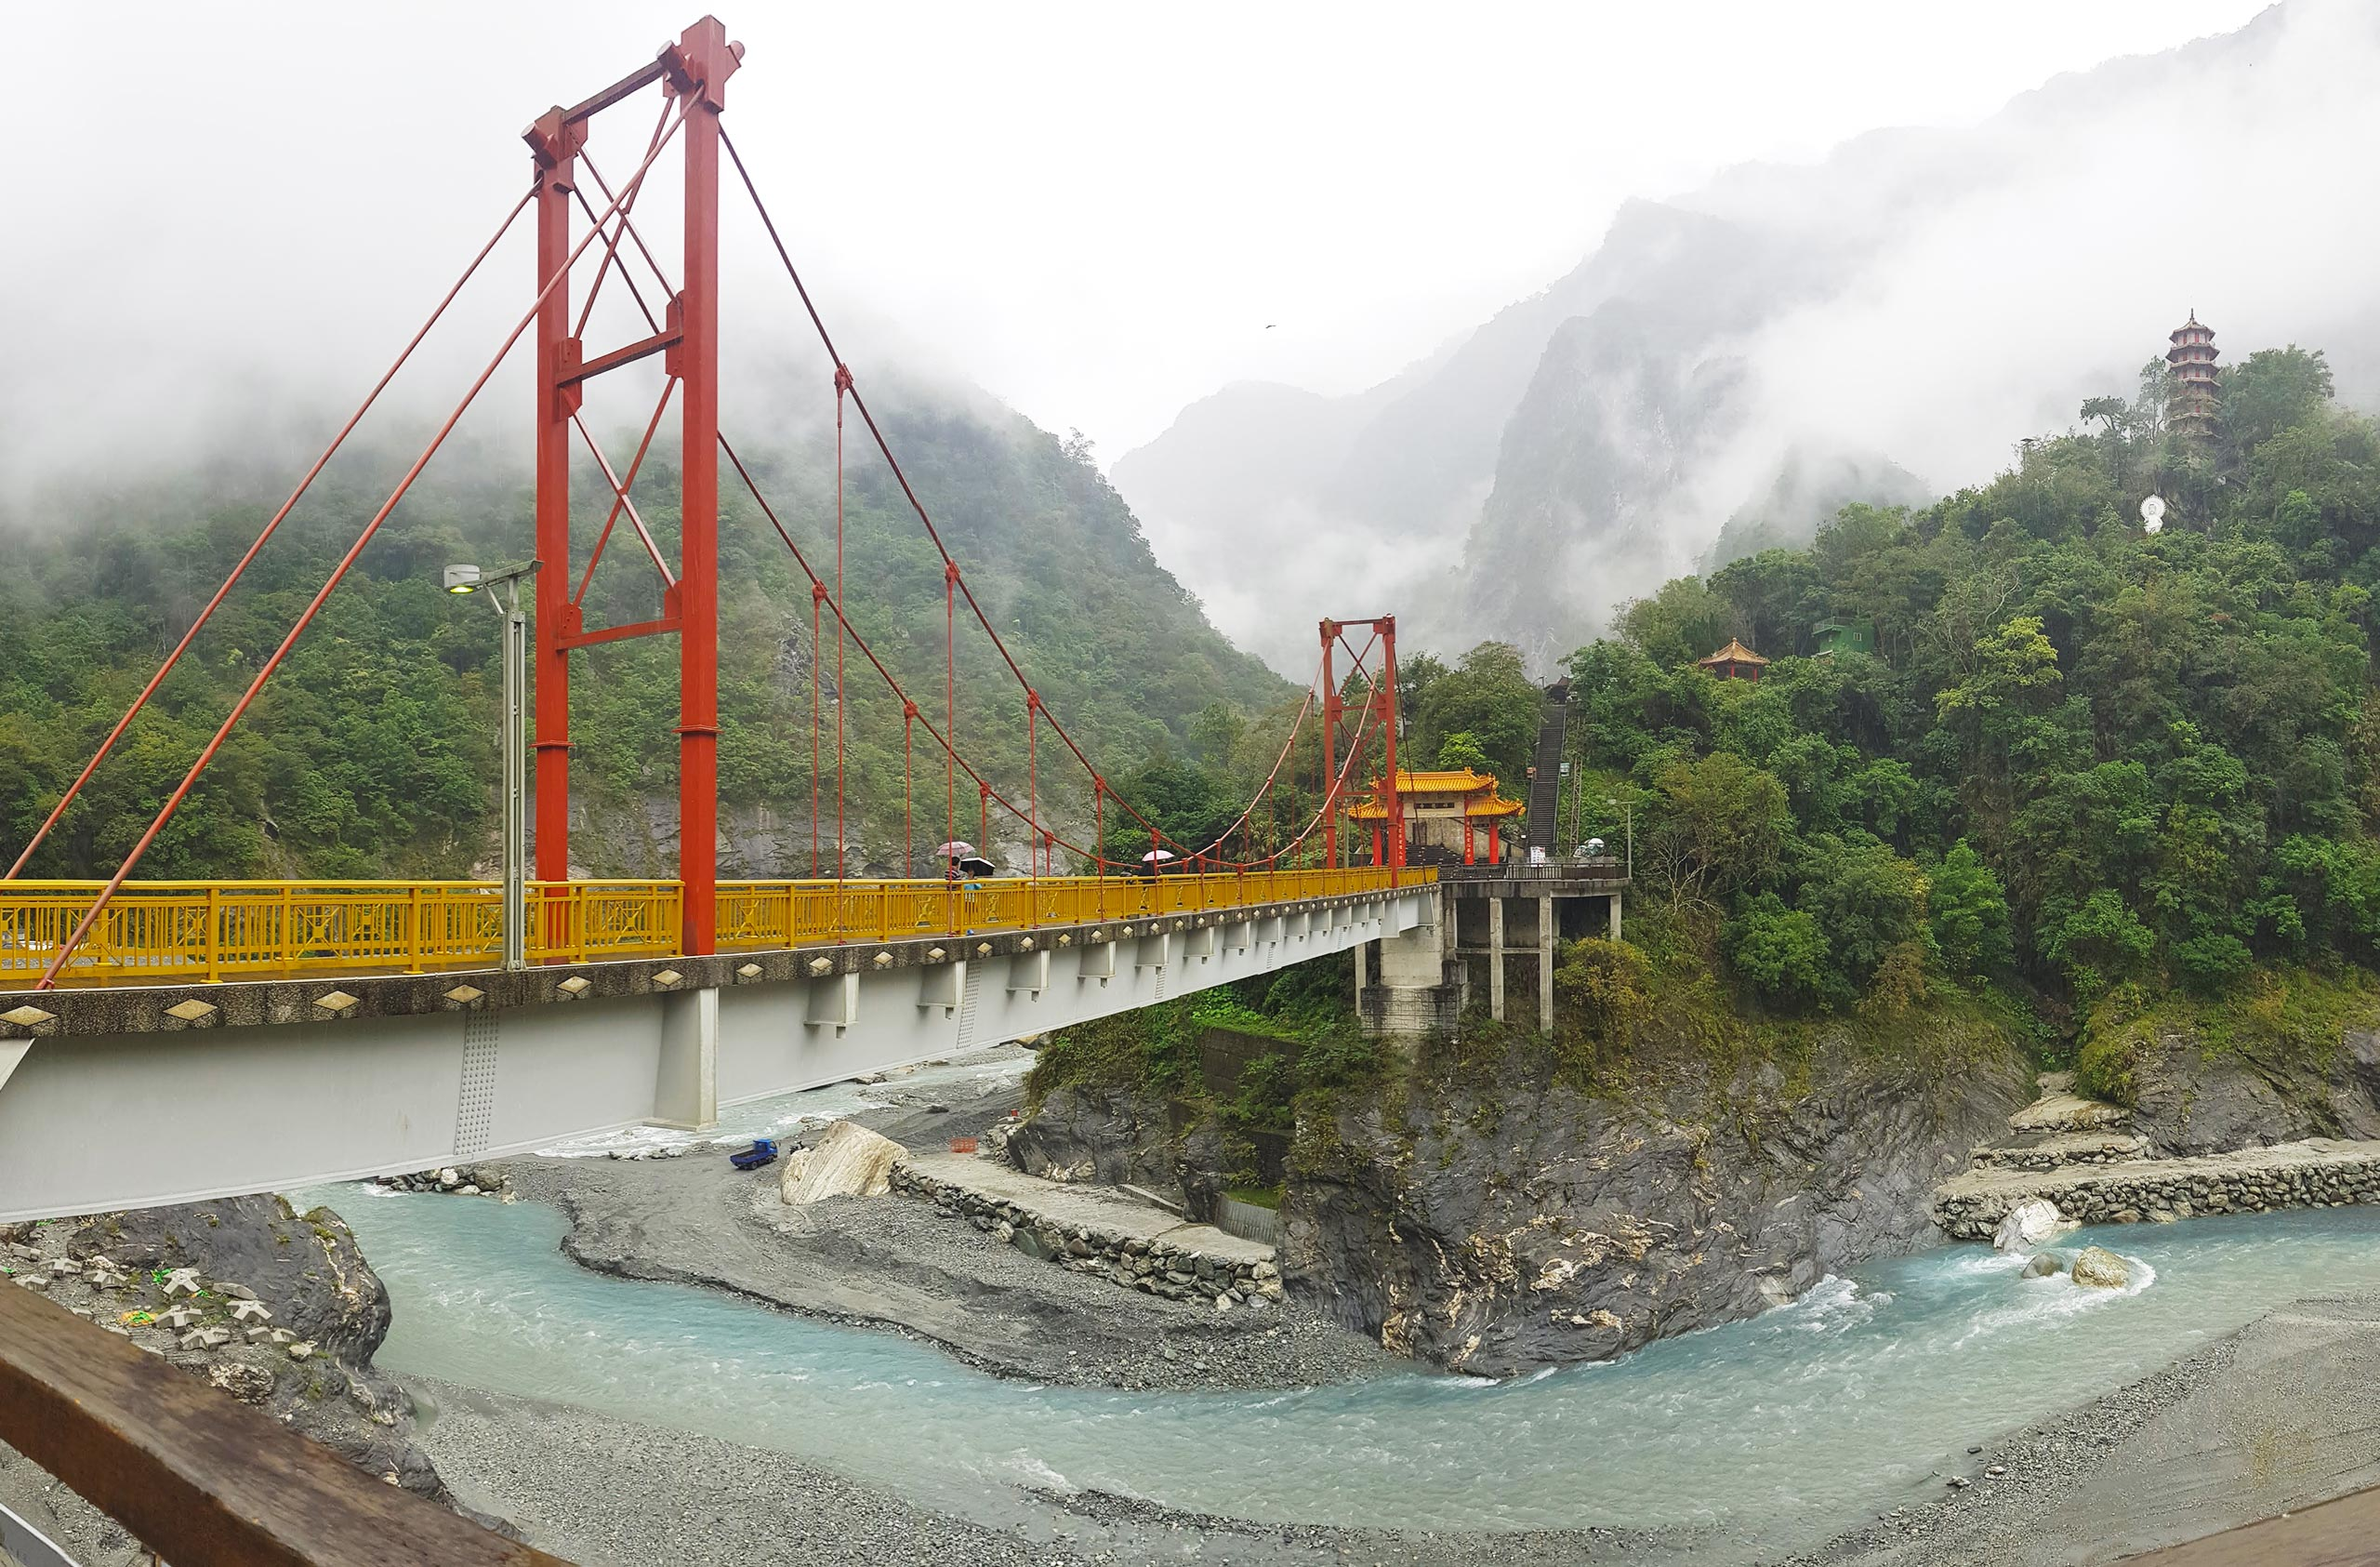 Taiwan Road Trip - Wu Ling Cimu Bridge2